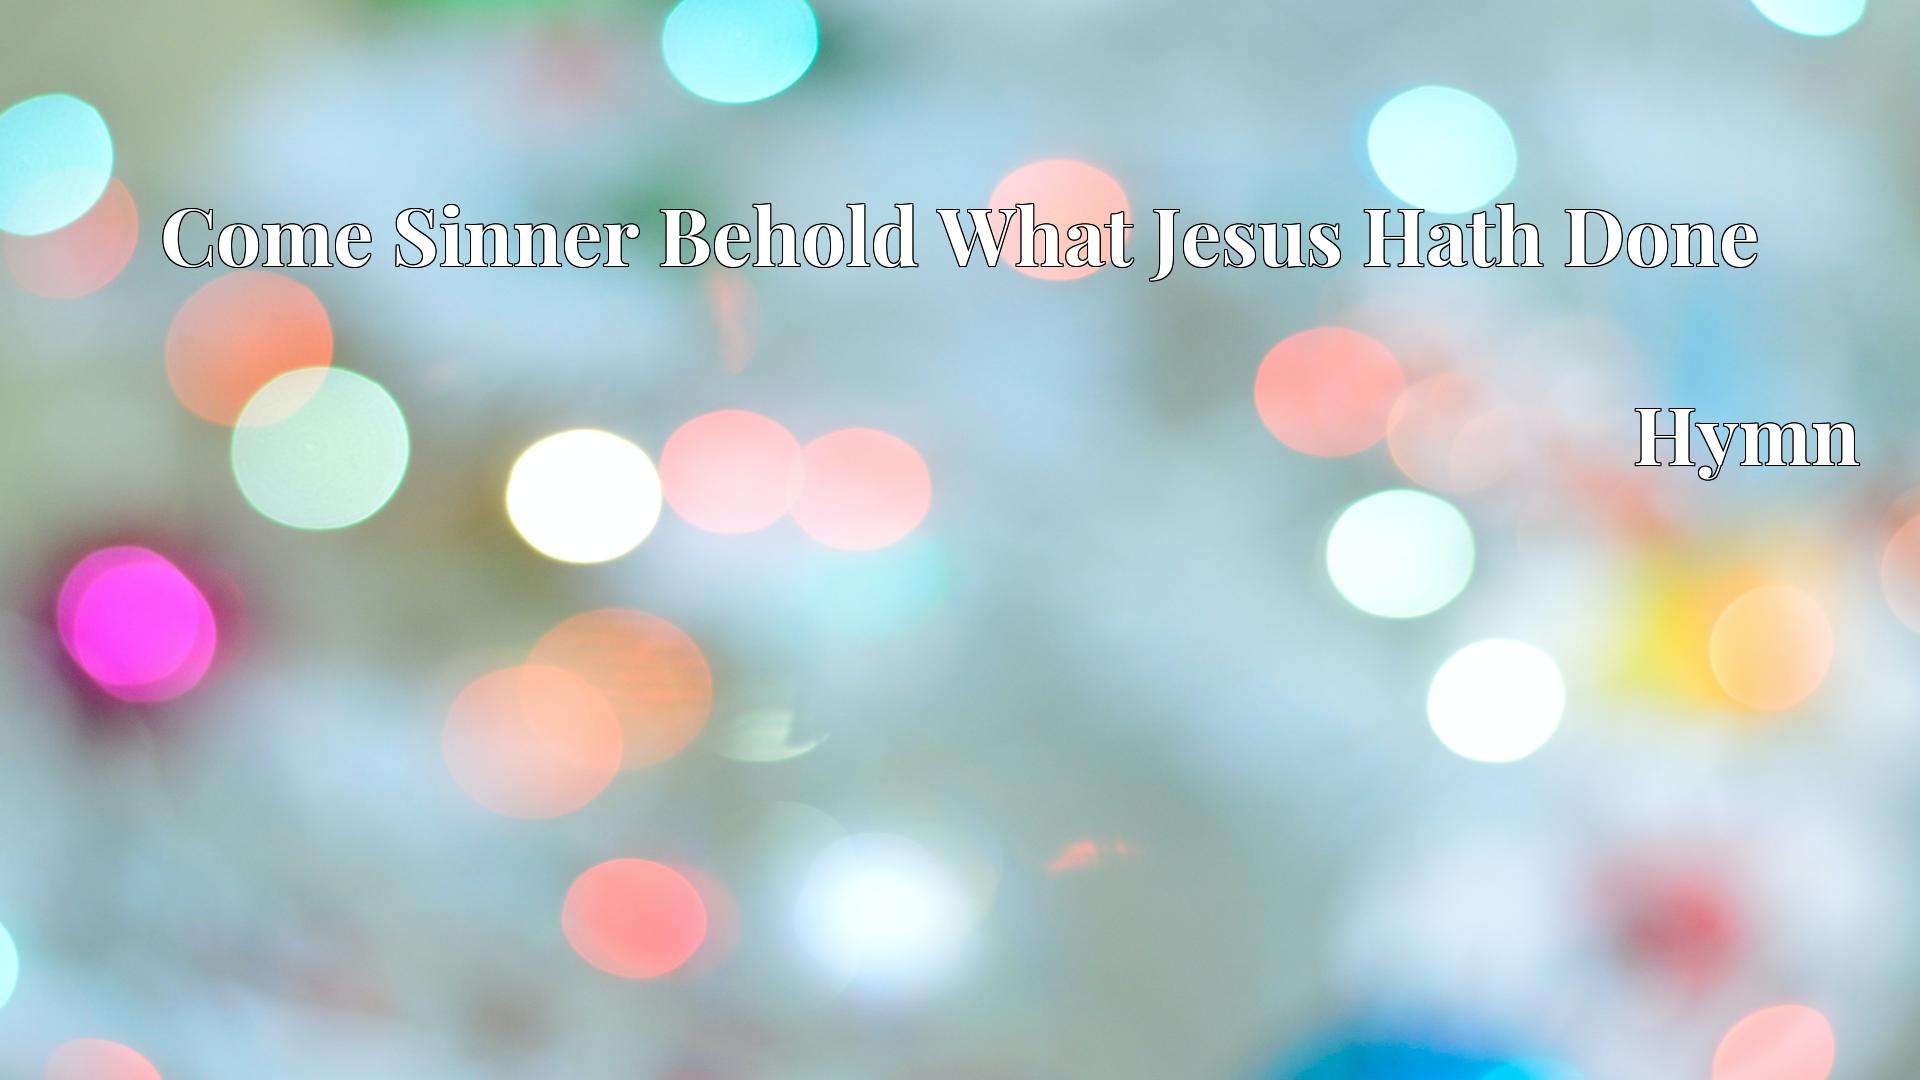 Come Sinner Behold What Jesus Hath Done - Hymn